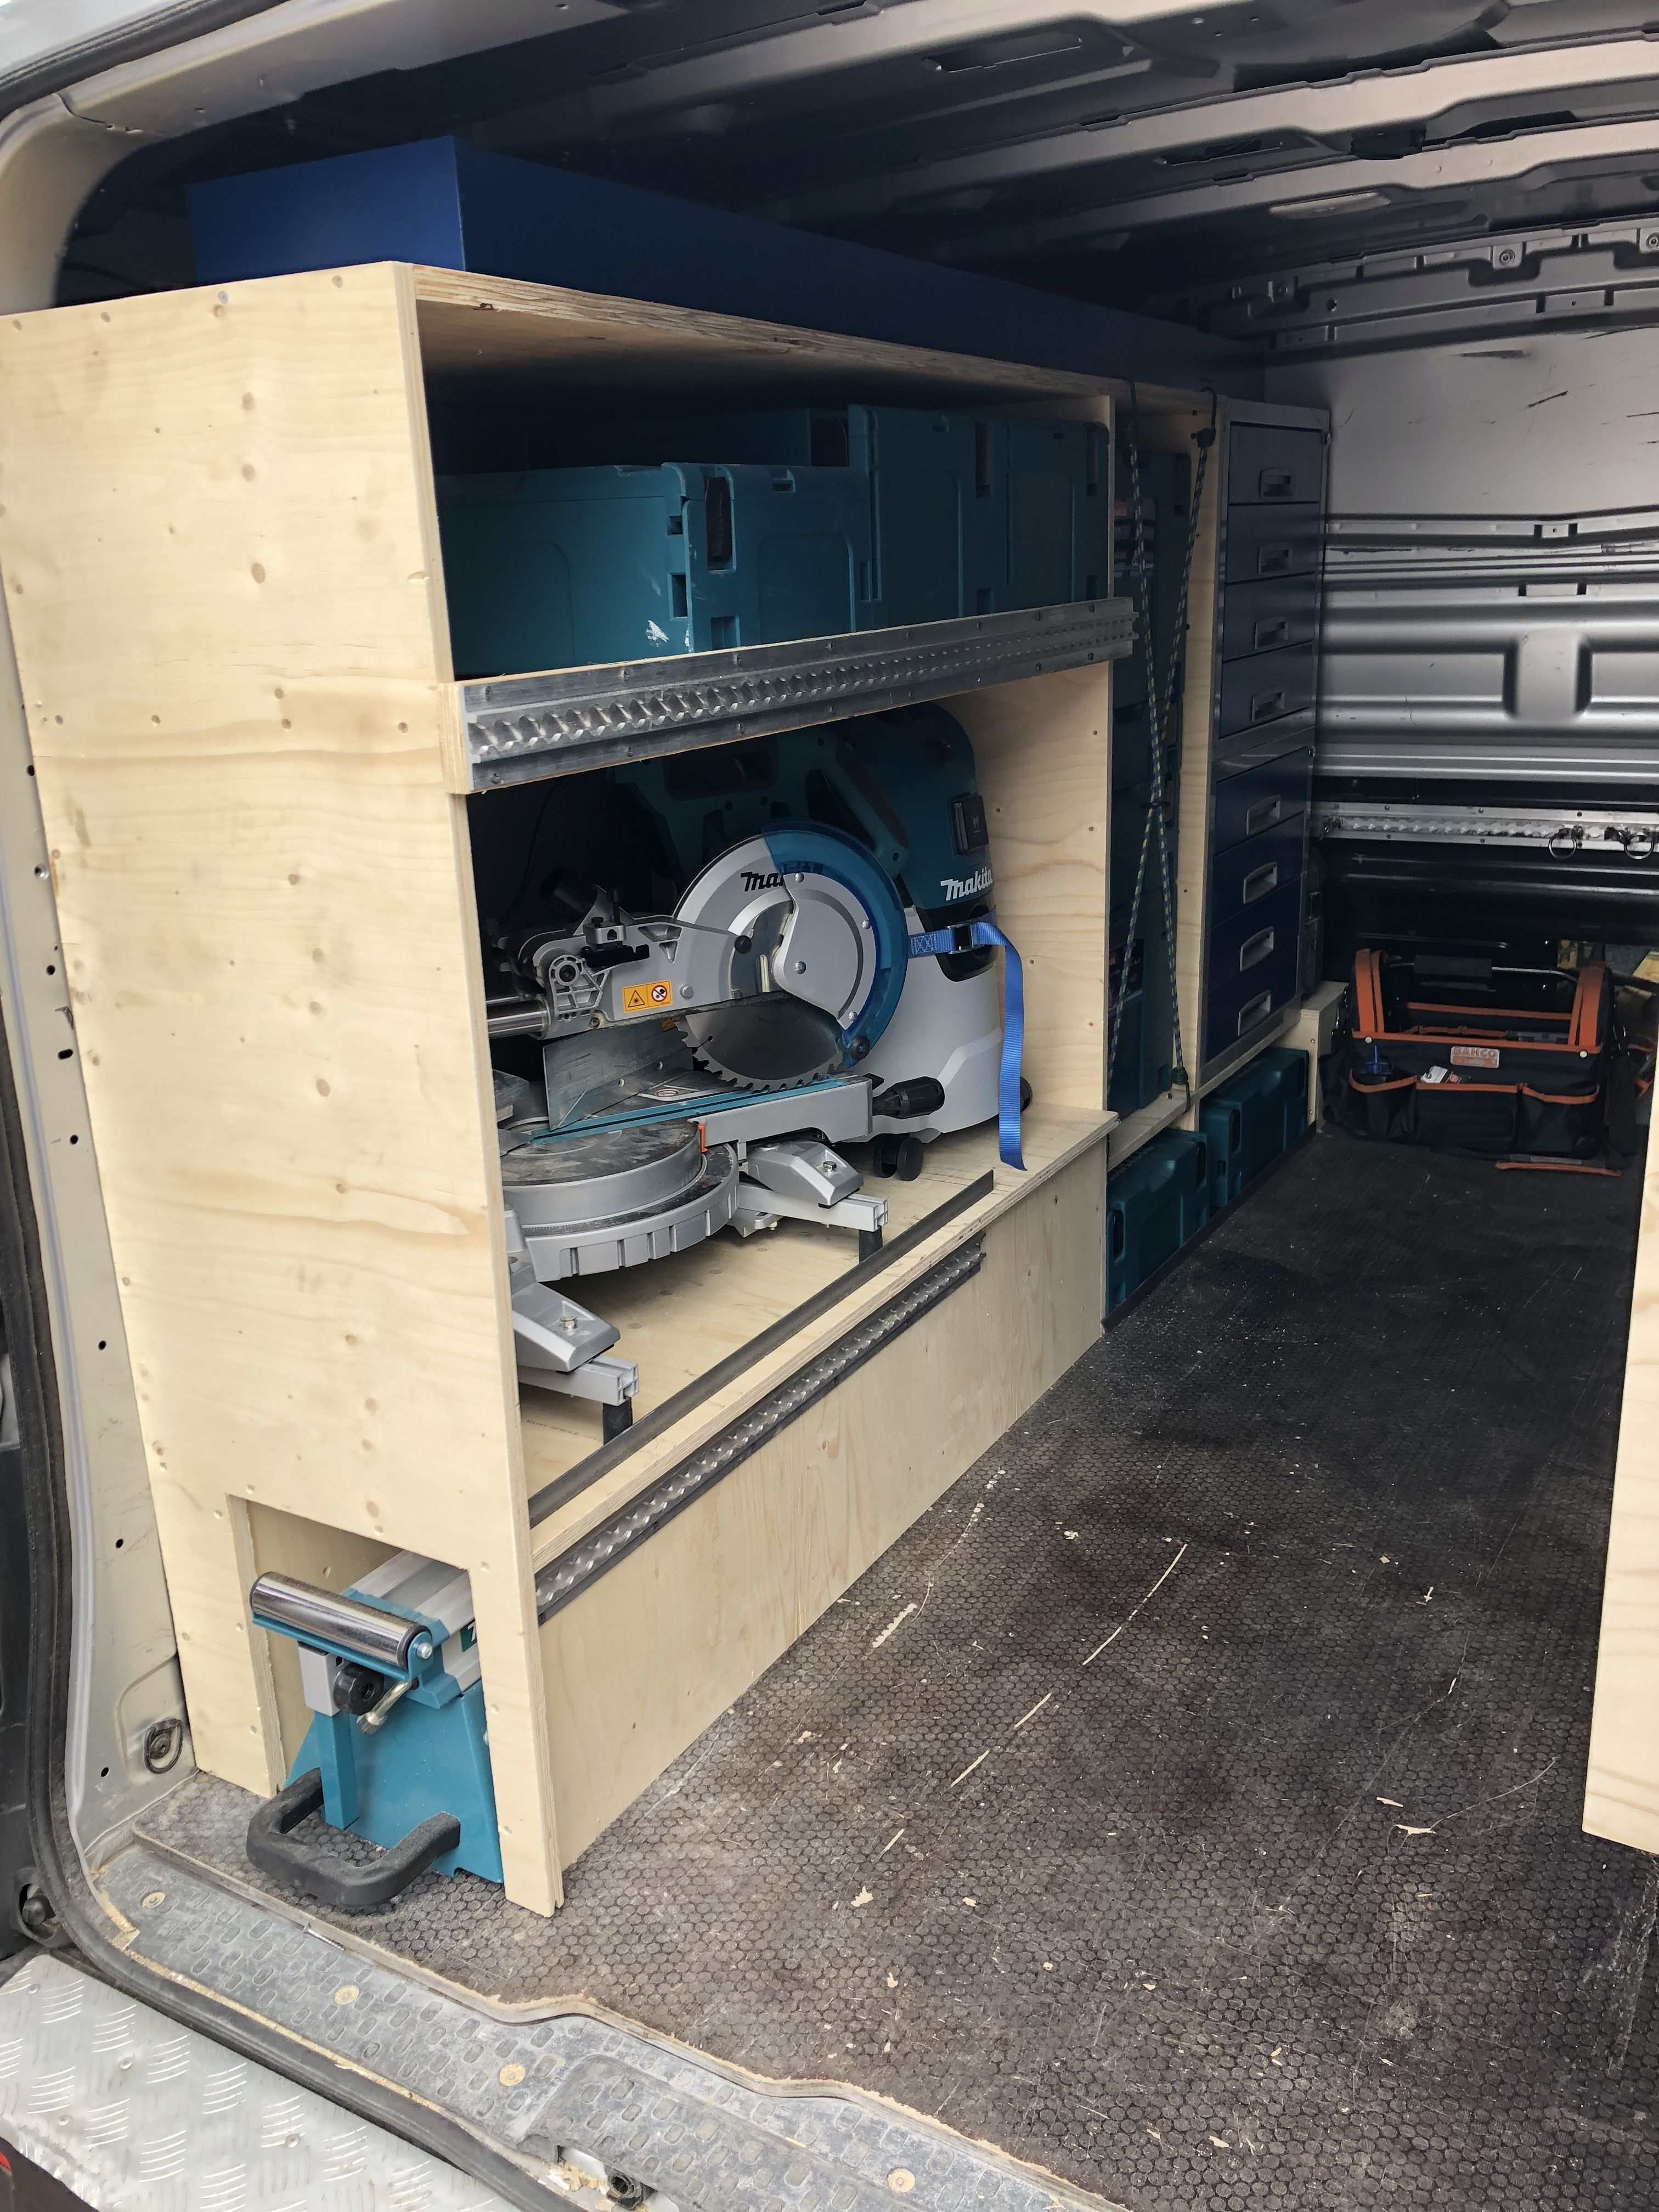 makita #vivaro #toolstorage #tool #systainer #businrichting